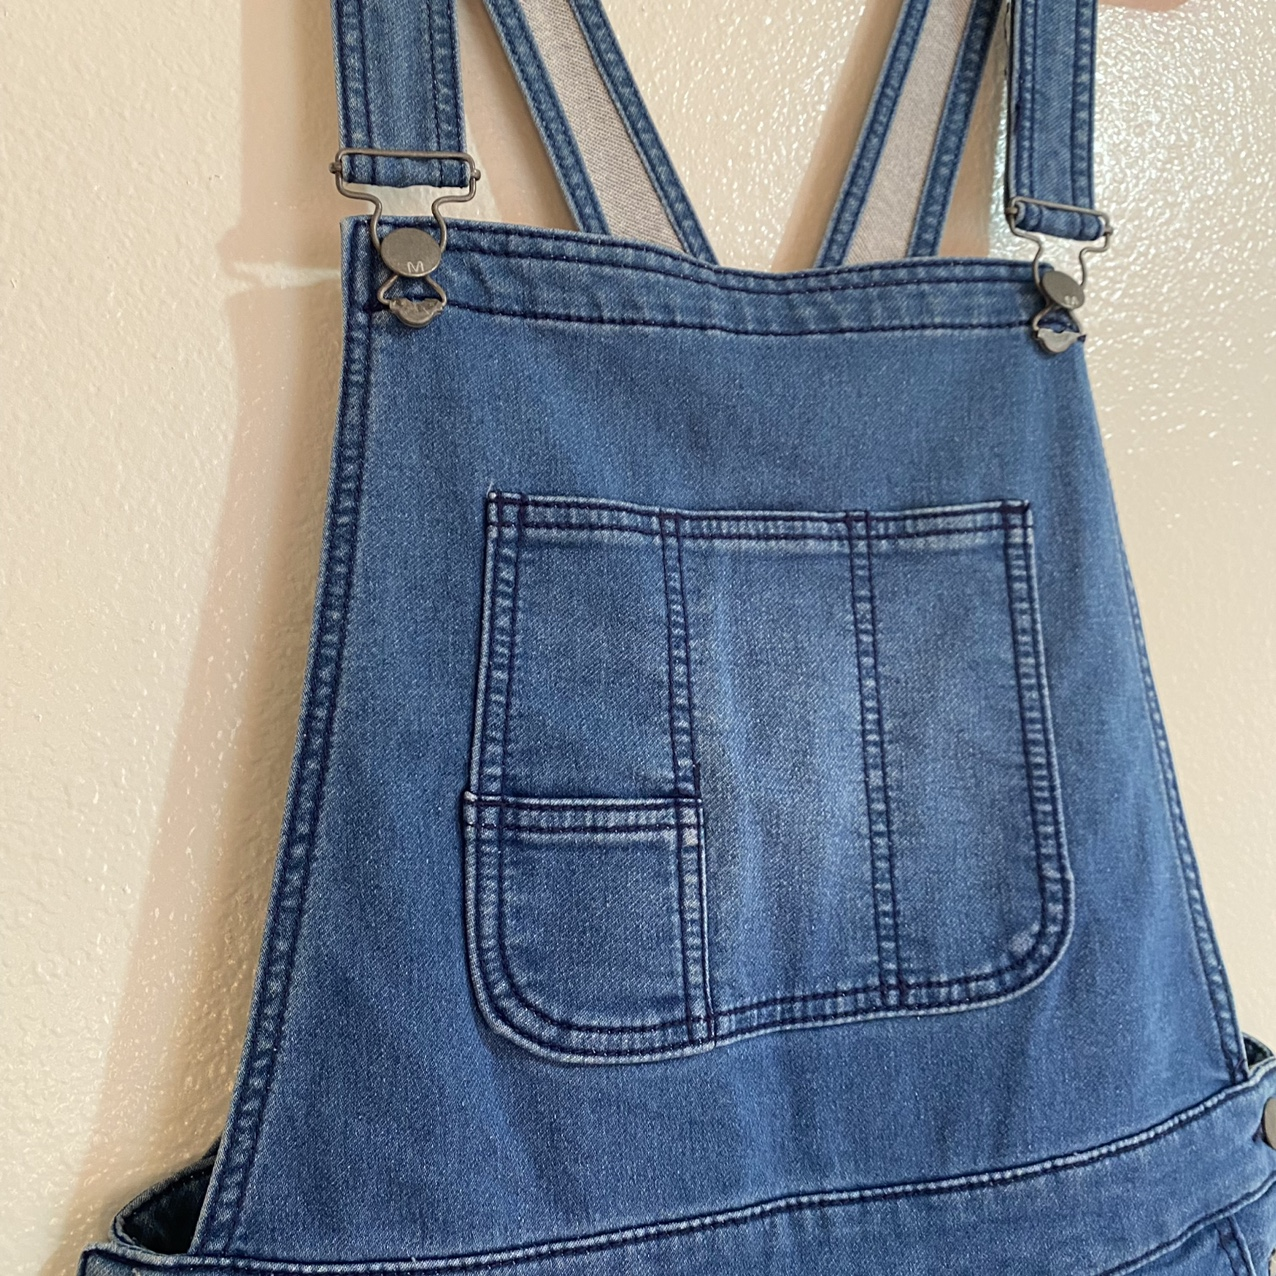 Product Image 1 - Mossimo Denim Overall Jeans with